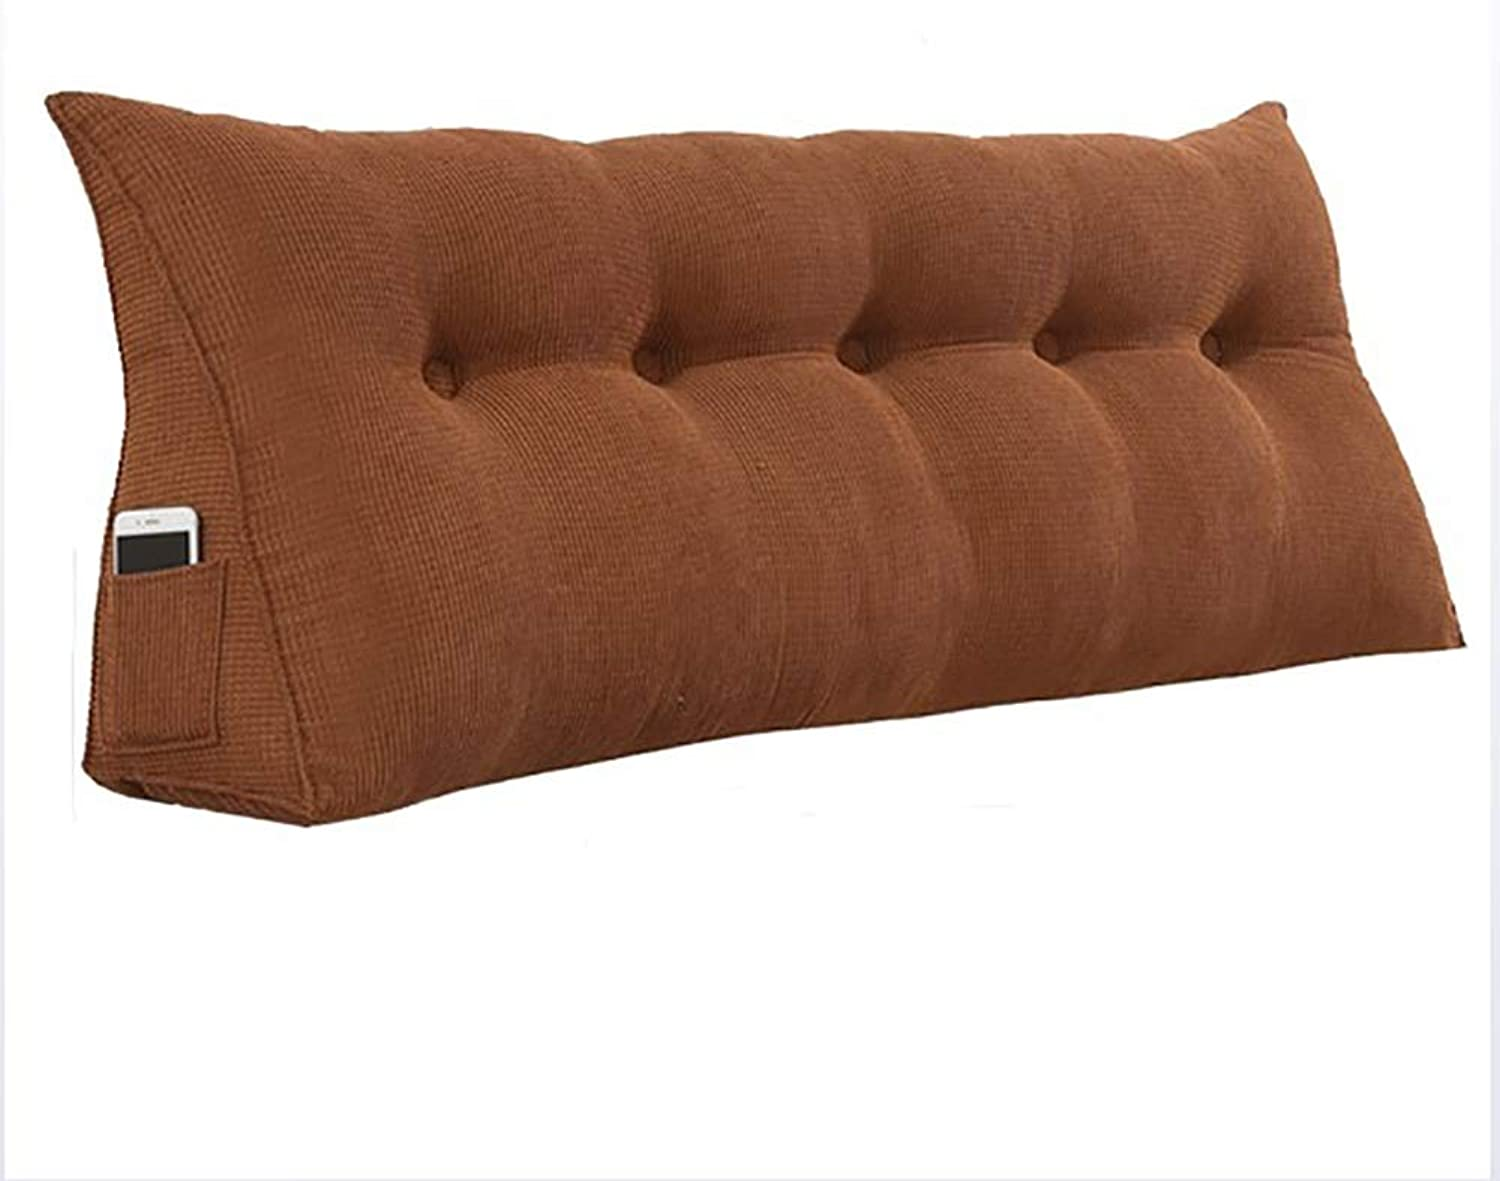 LXLIGHTS Upholstered Headboard Bedroom Anti-Collision Bed Wedge Waist Pad Bedside Cushion Bay Window Sofa Pillow Soft Case (color   Brown, Size   180  50  22cm)